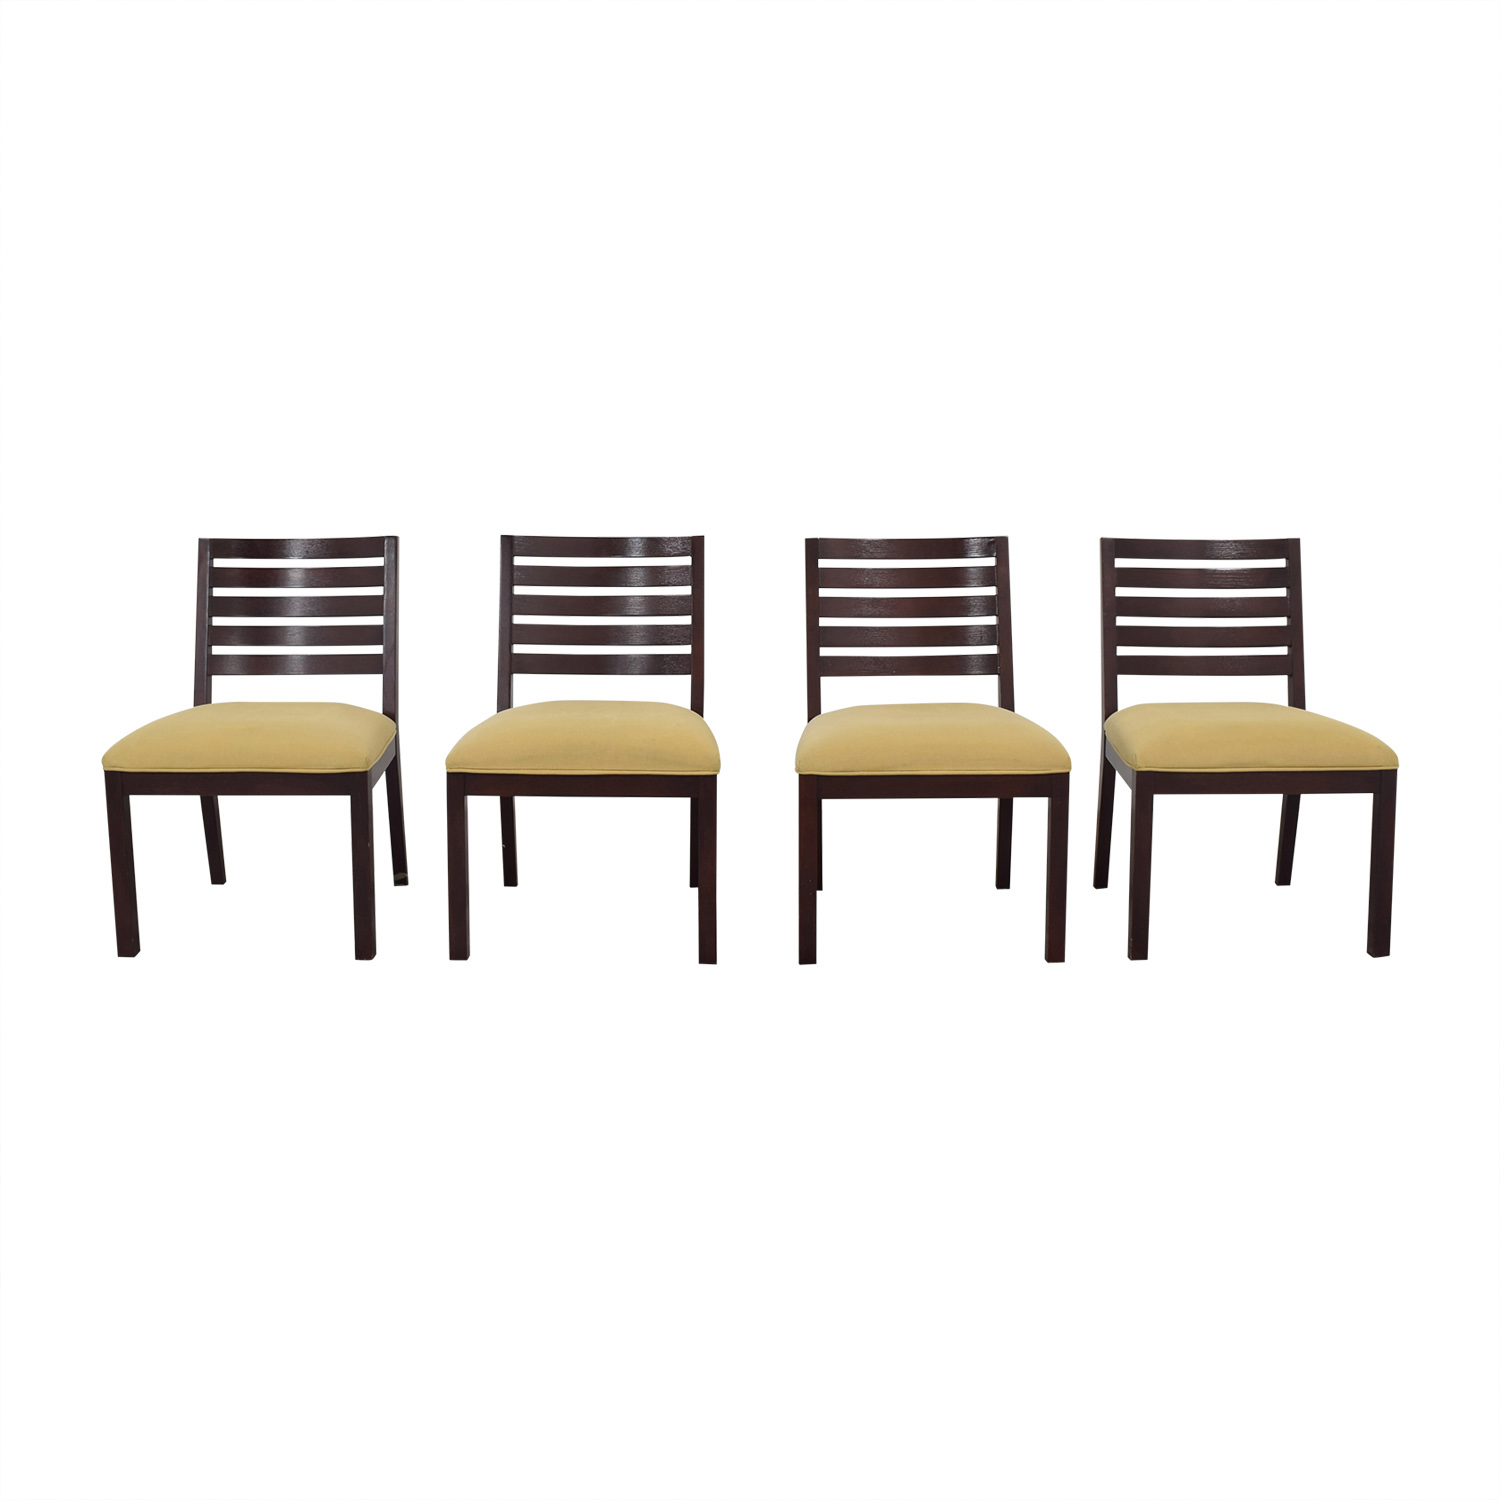 Ethan Allen Ethan Allen Dining Chairs tan and brown